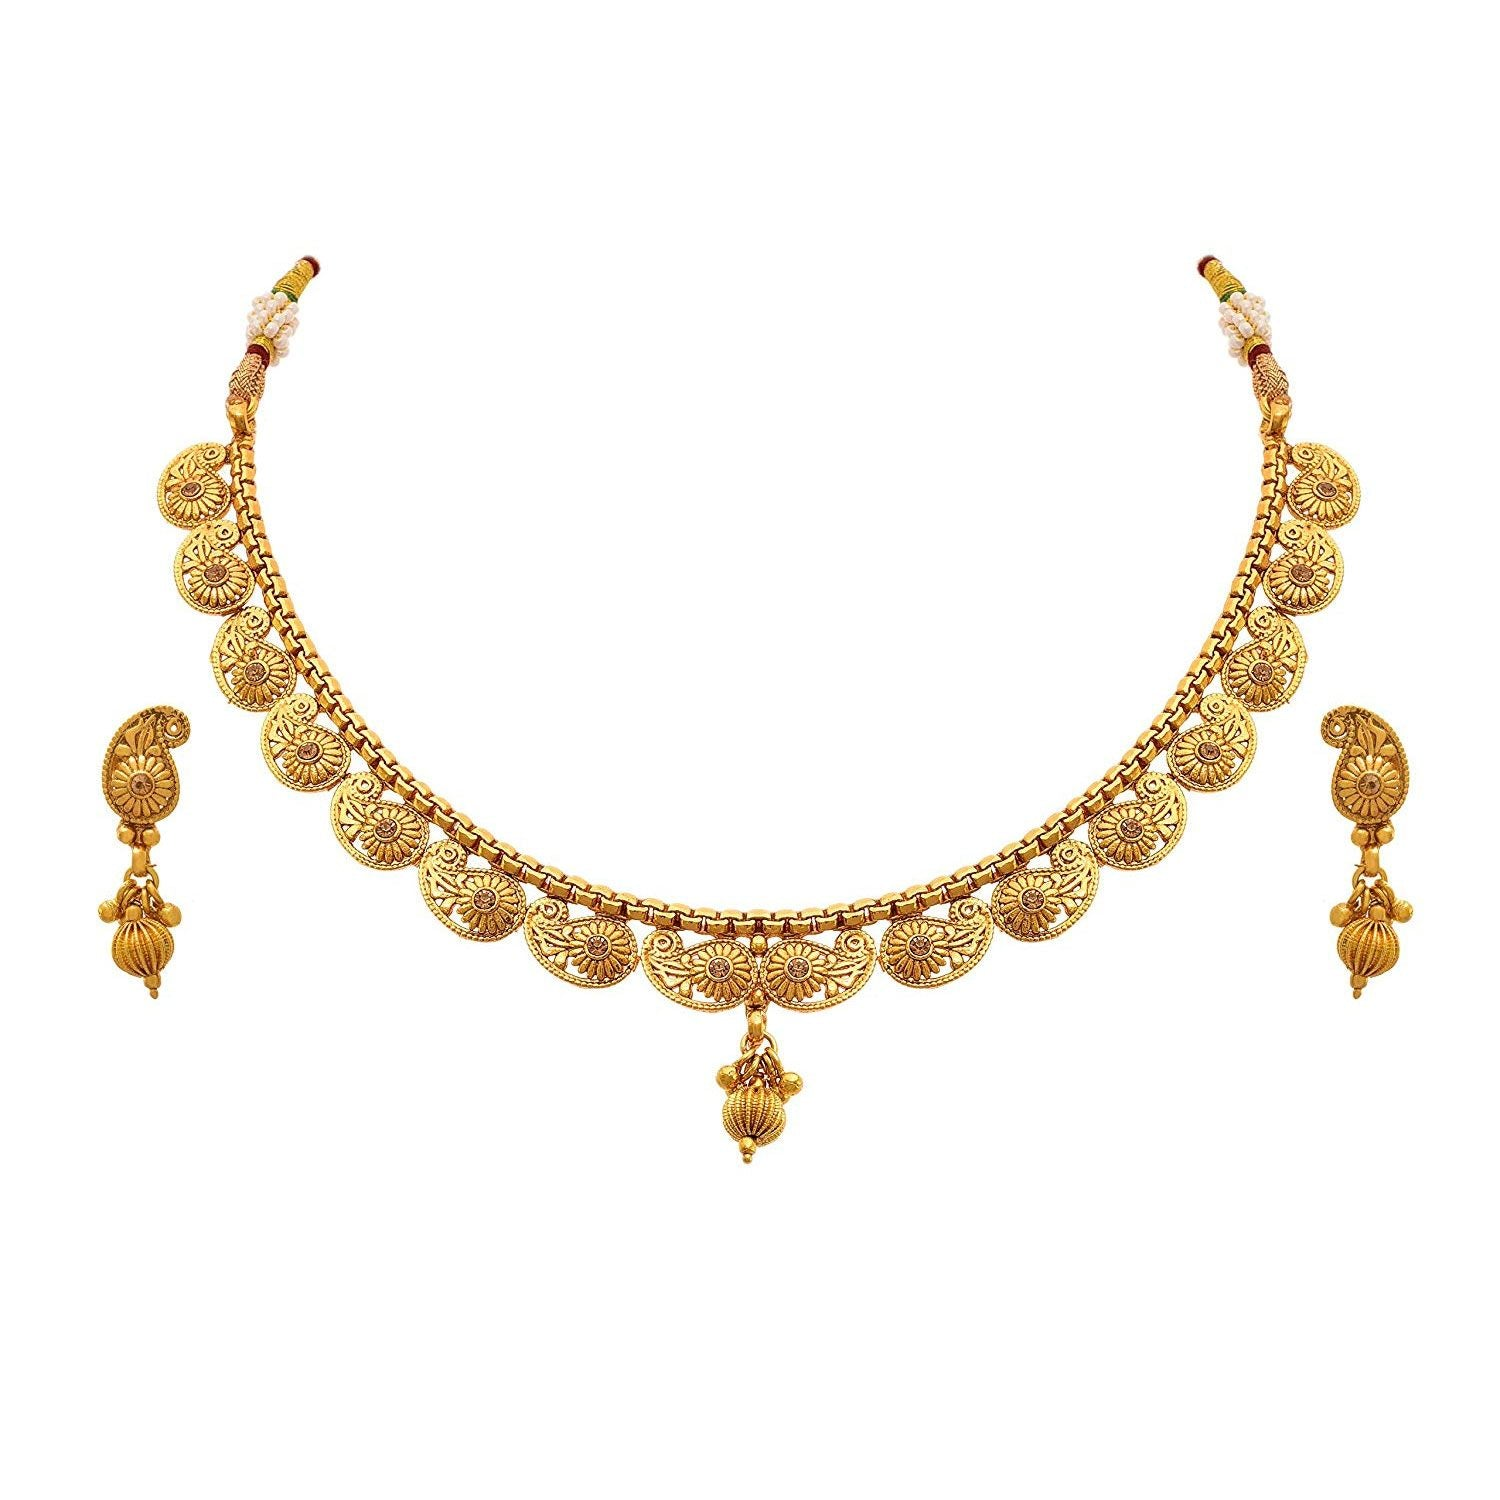 JFL-Jewellery For Less Traditional Ethnic One Gram Gold Plated Diamond Designer Necklace Set With Earrings For Women & Girls.